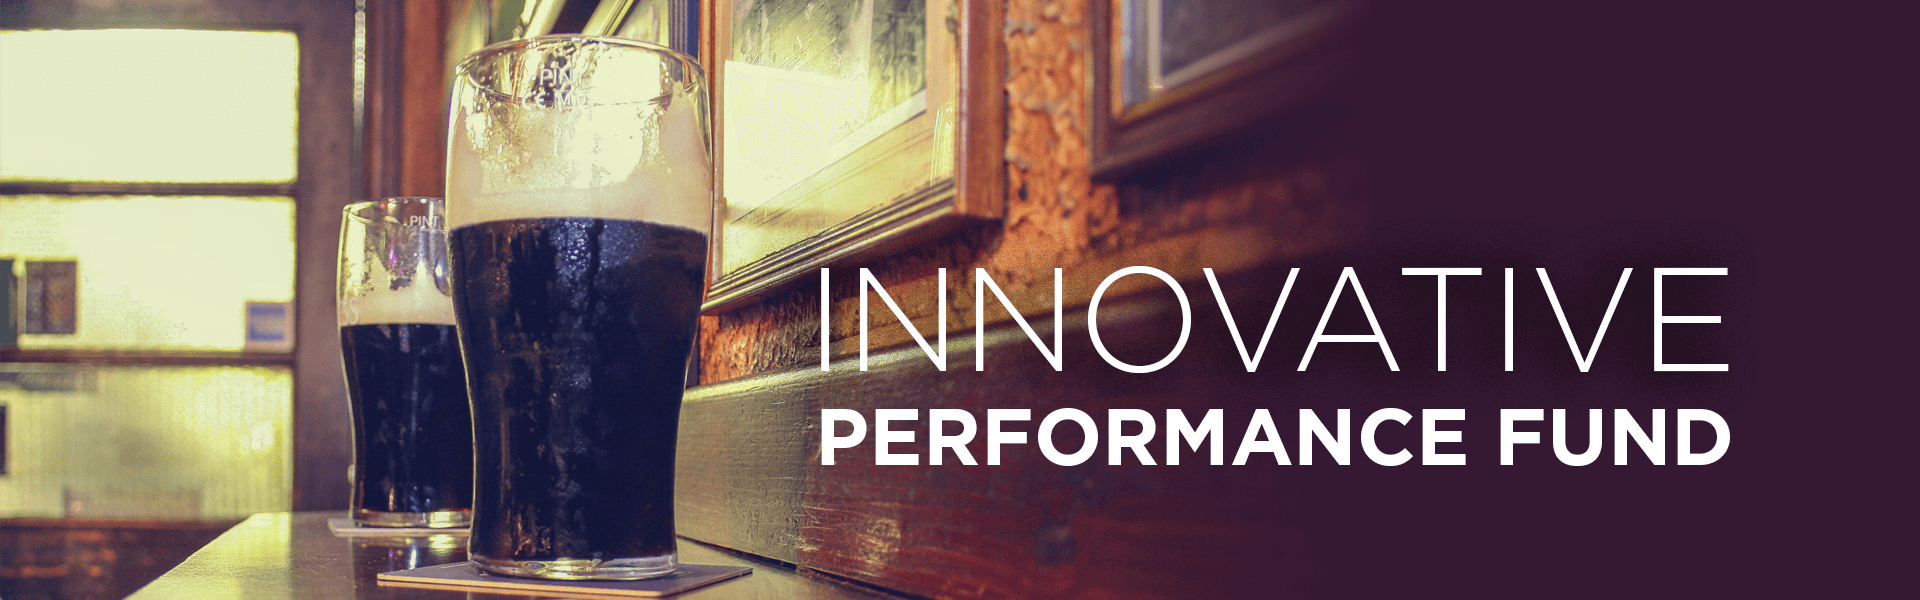 Innovative Performance Fund